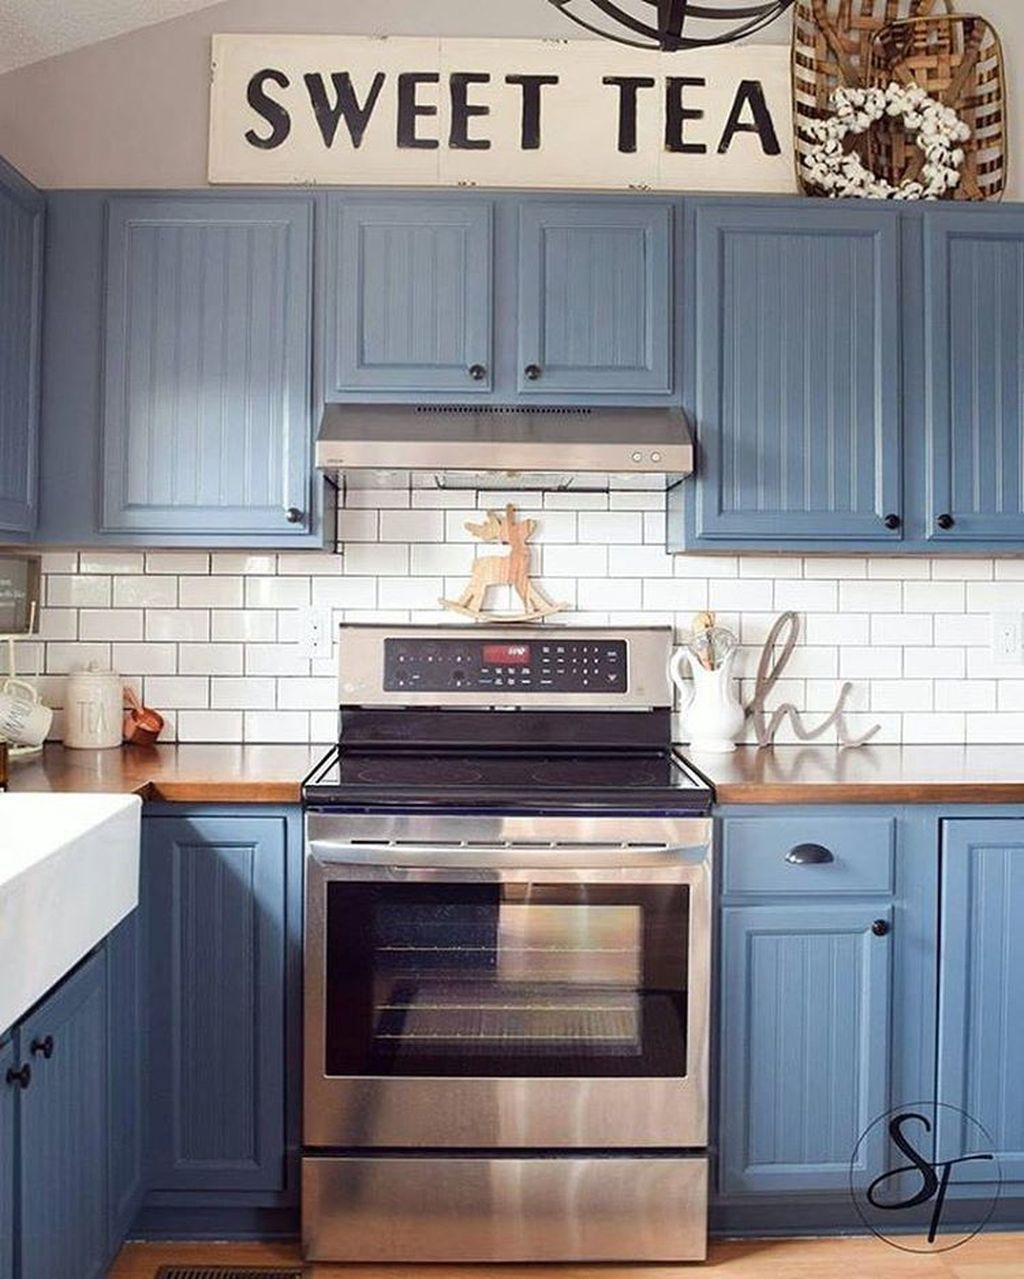 36 Popular Farmhouse Kitchen Color Ideas To Get Comfortable Cooking #farmhousekitchencolors